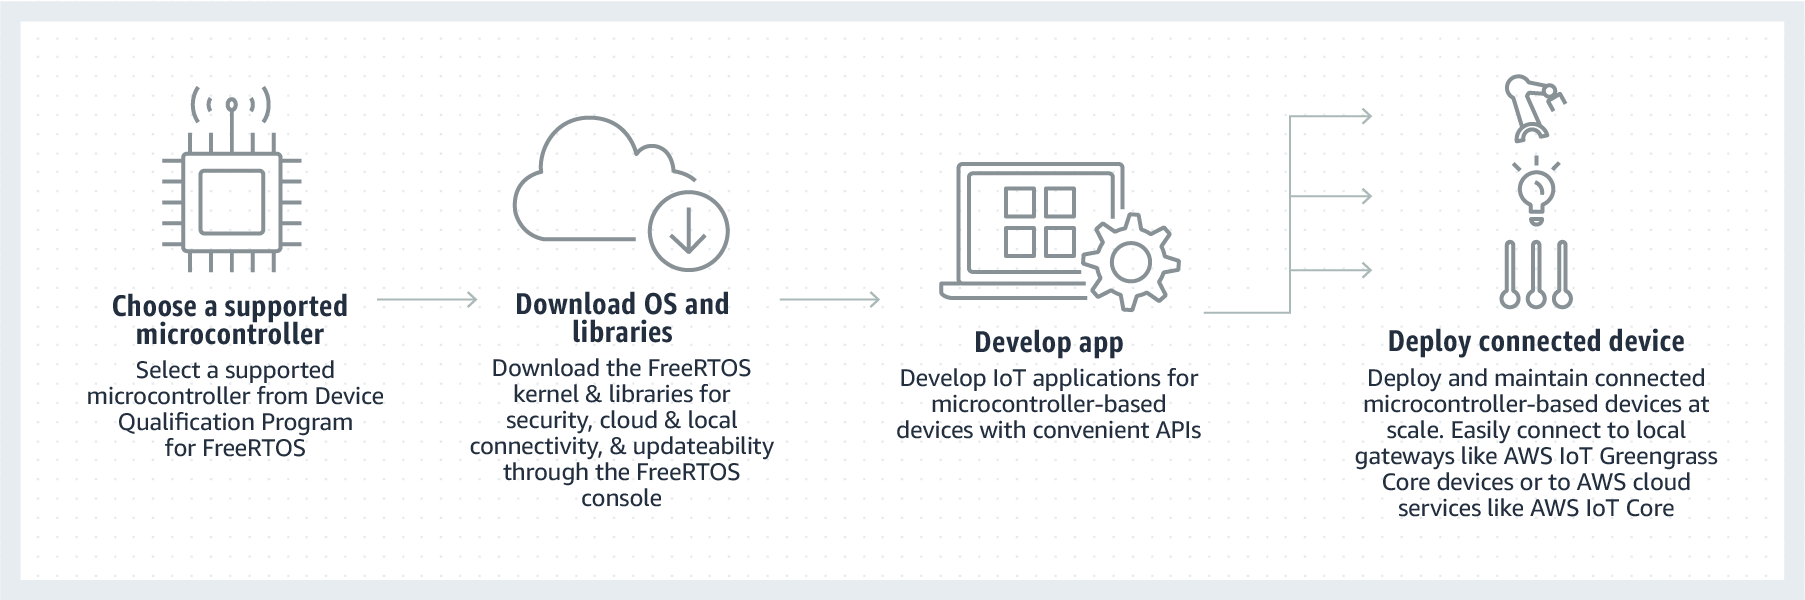 What Is Amazon FreeRTOS? - Amazon FreeRTOS